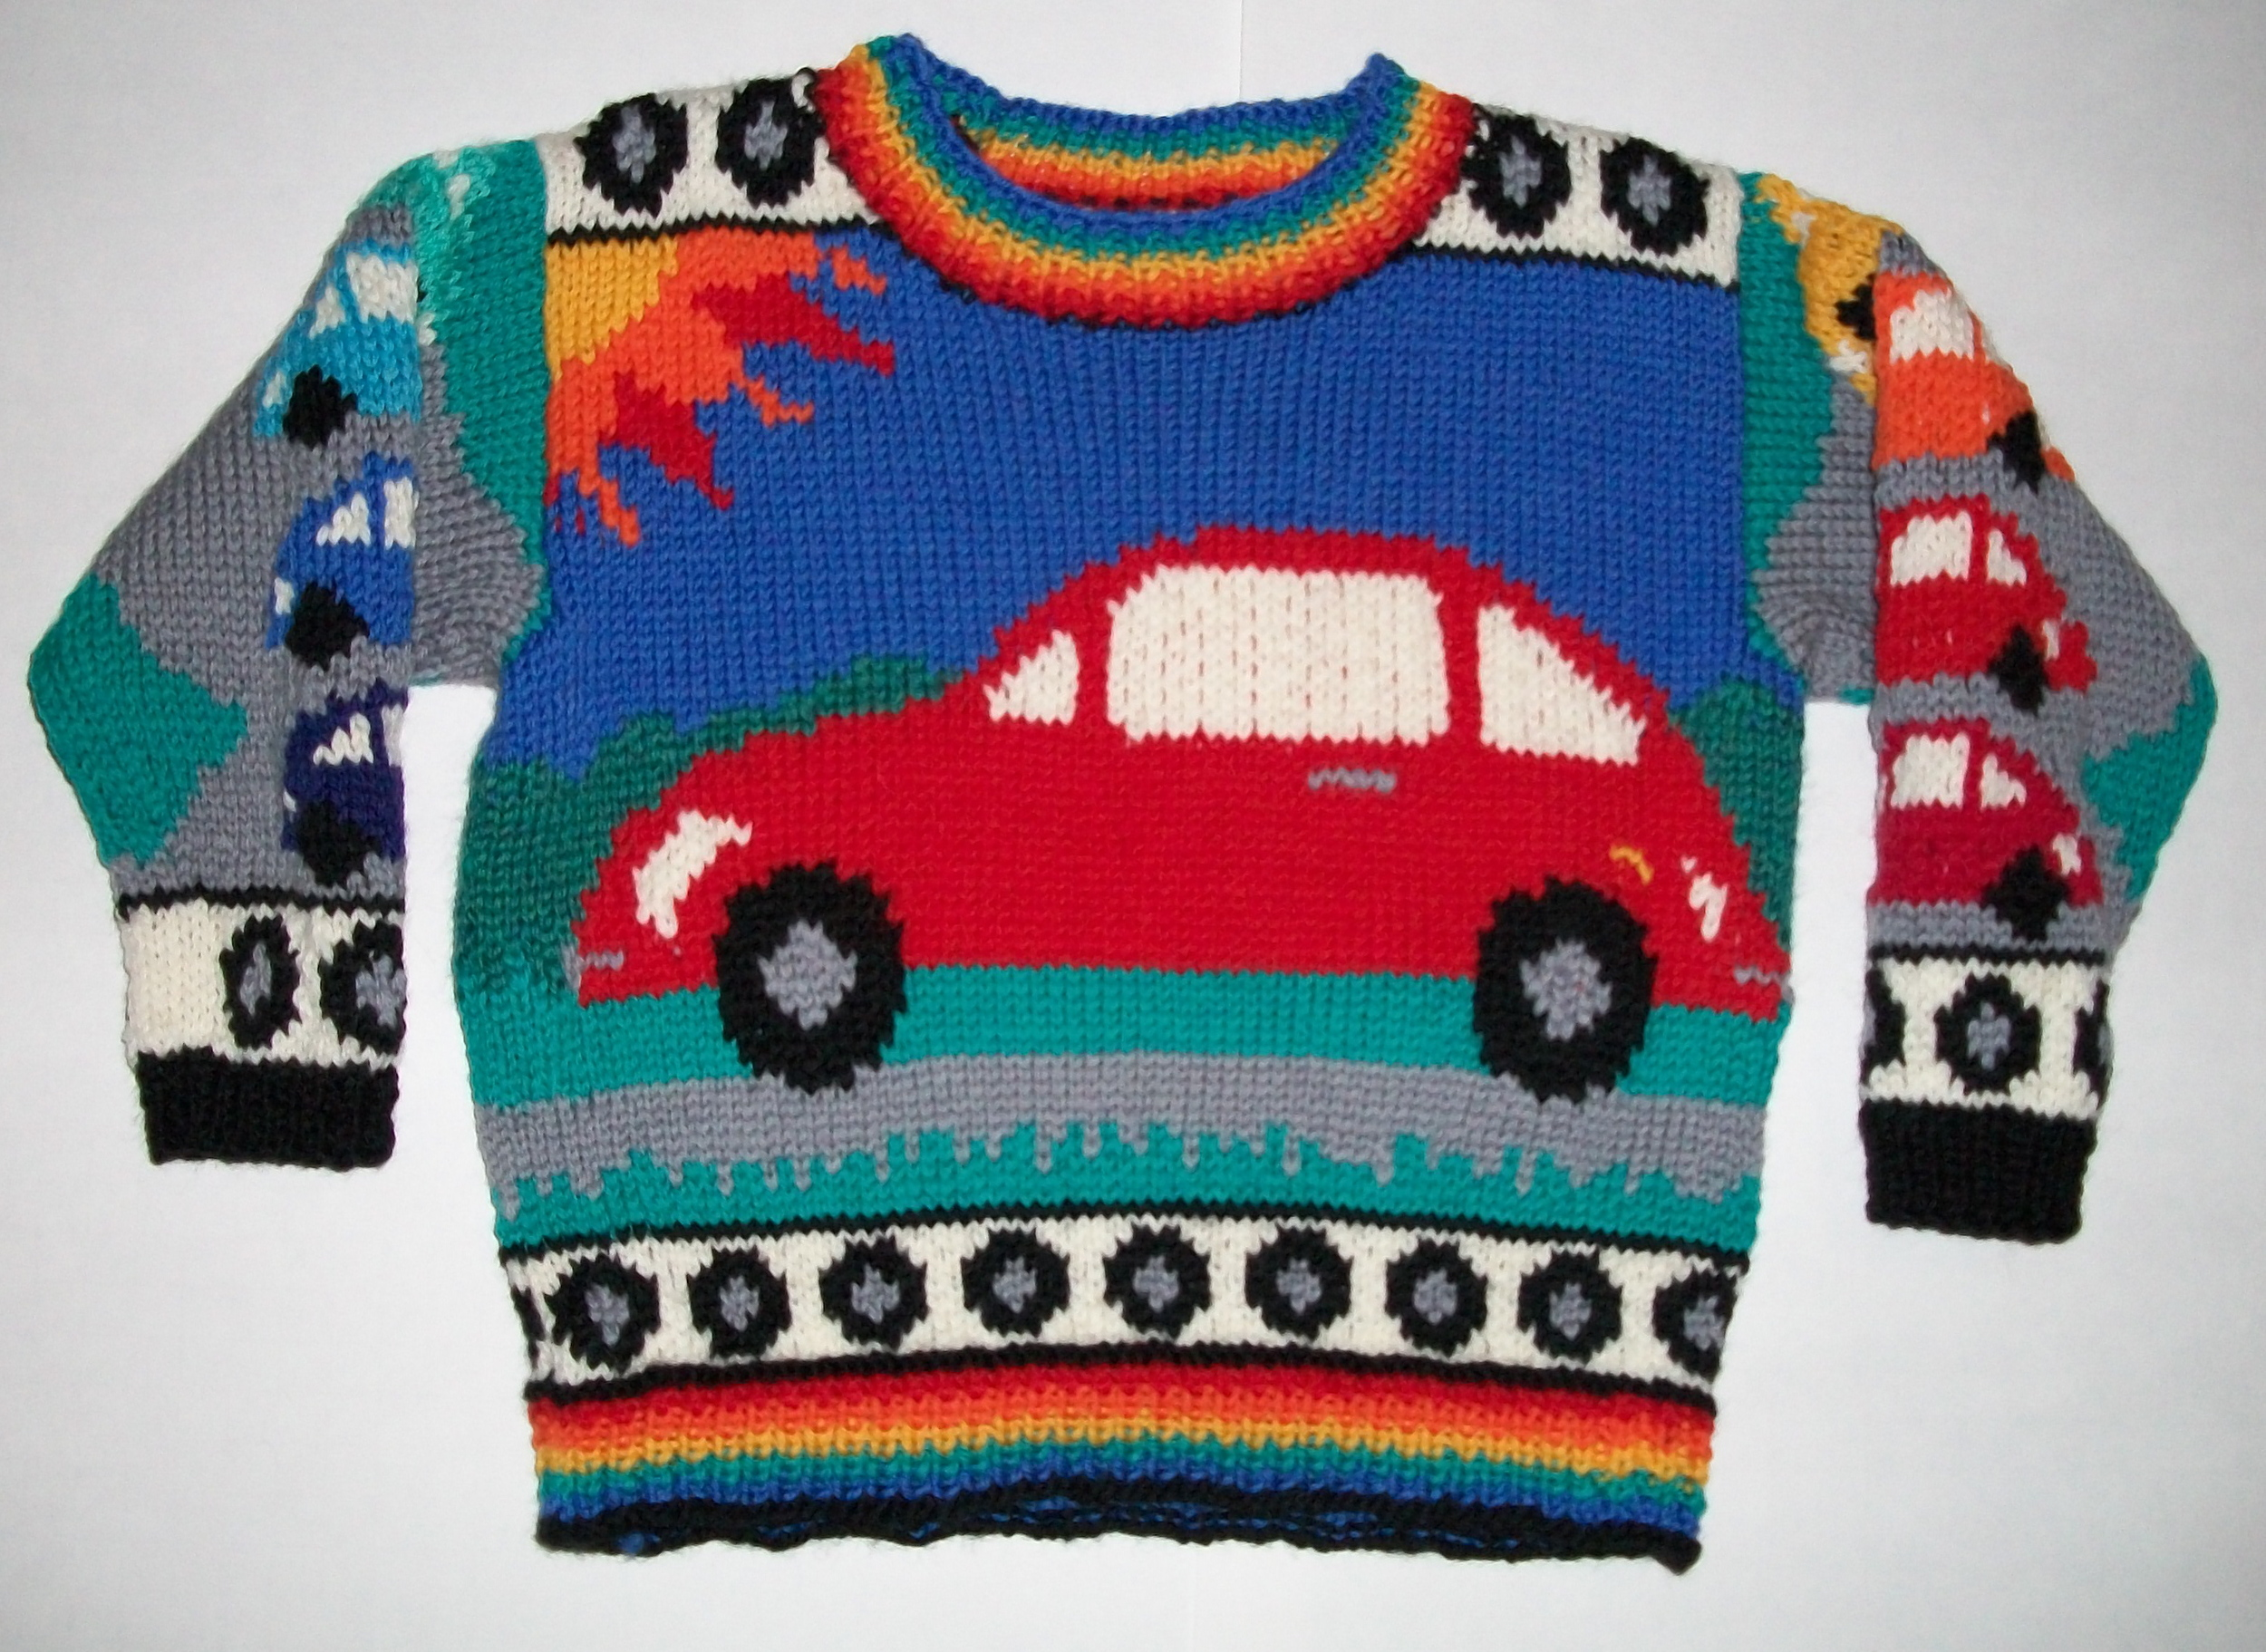 TWO YEARS: BEETLES FRONT    When Levin was two, he was obsessed with Beetle cars. On the front the car is red, and on the back the car is orange. The right sleeve has blue Beetles and the left sleeve has red to yellow Beetles. The wrists and hem trim is black and grey wheels on white. The neck and hem ribbing is rainbow rows. The wrists ribbing is black.